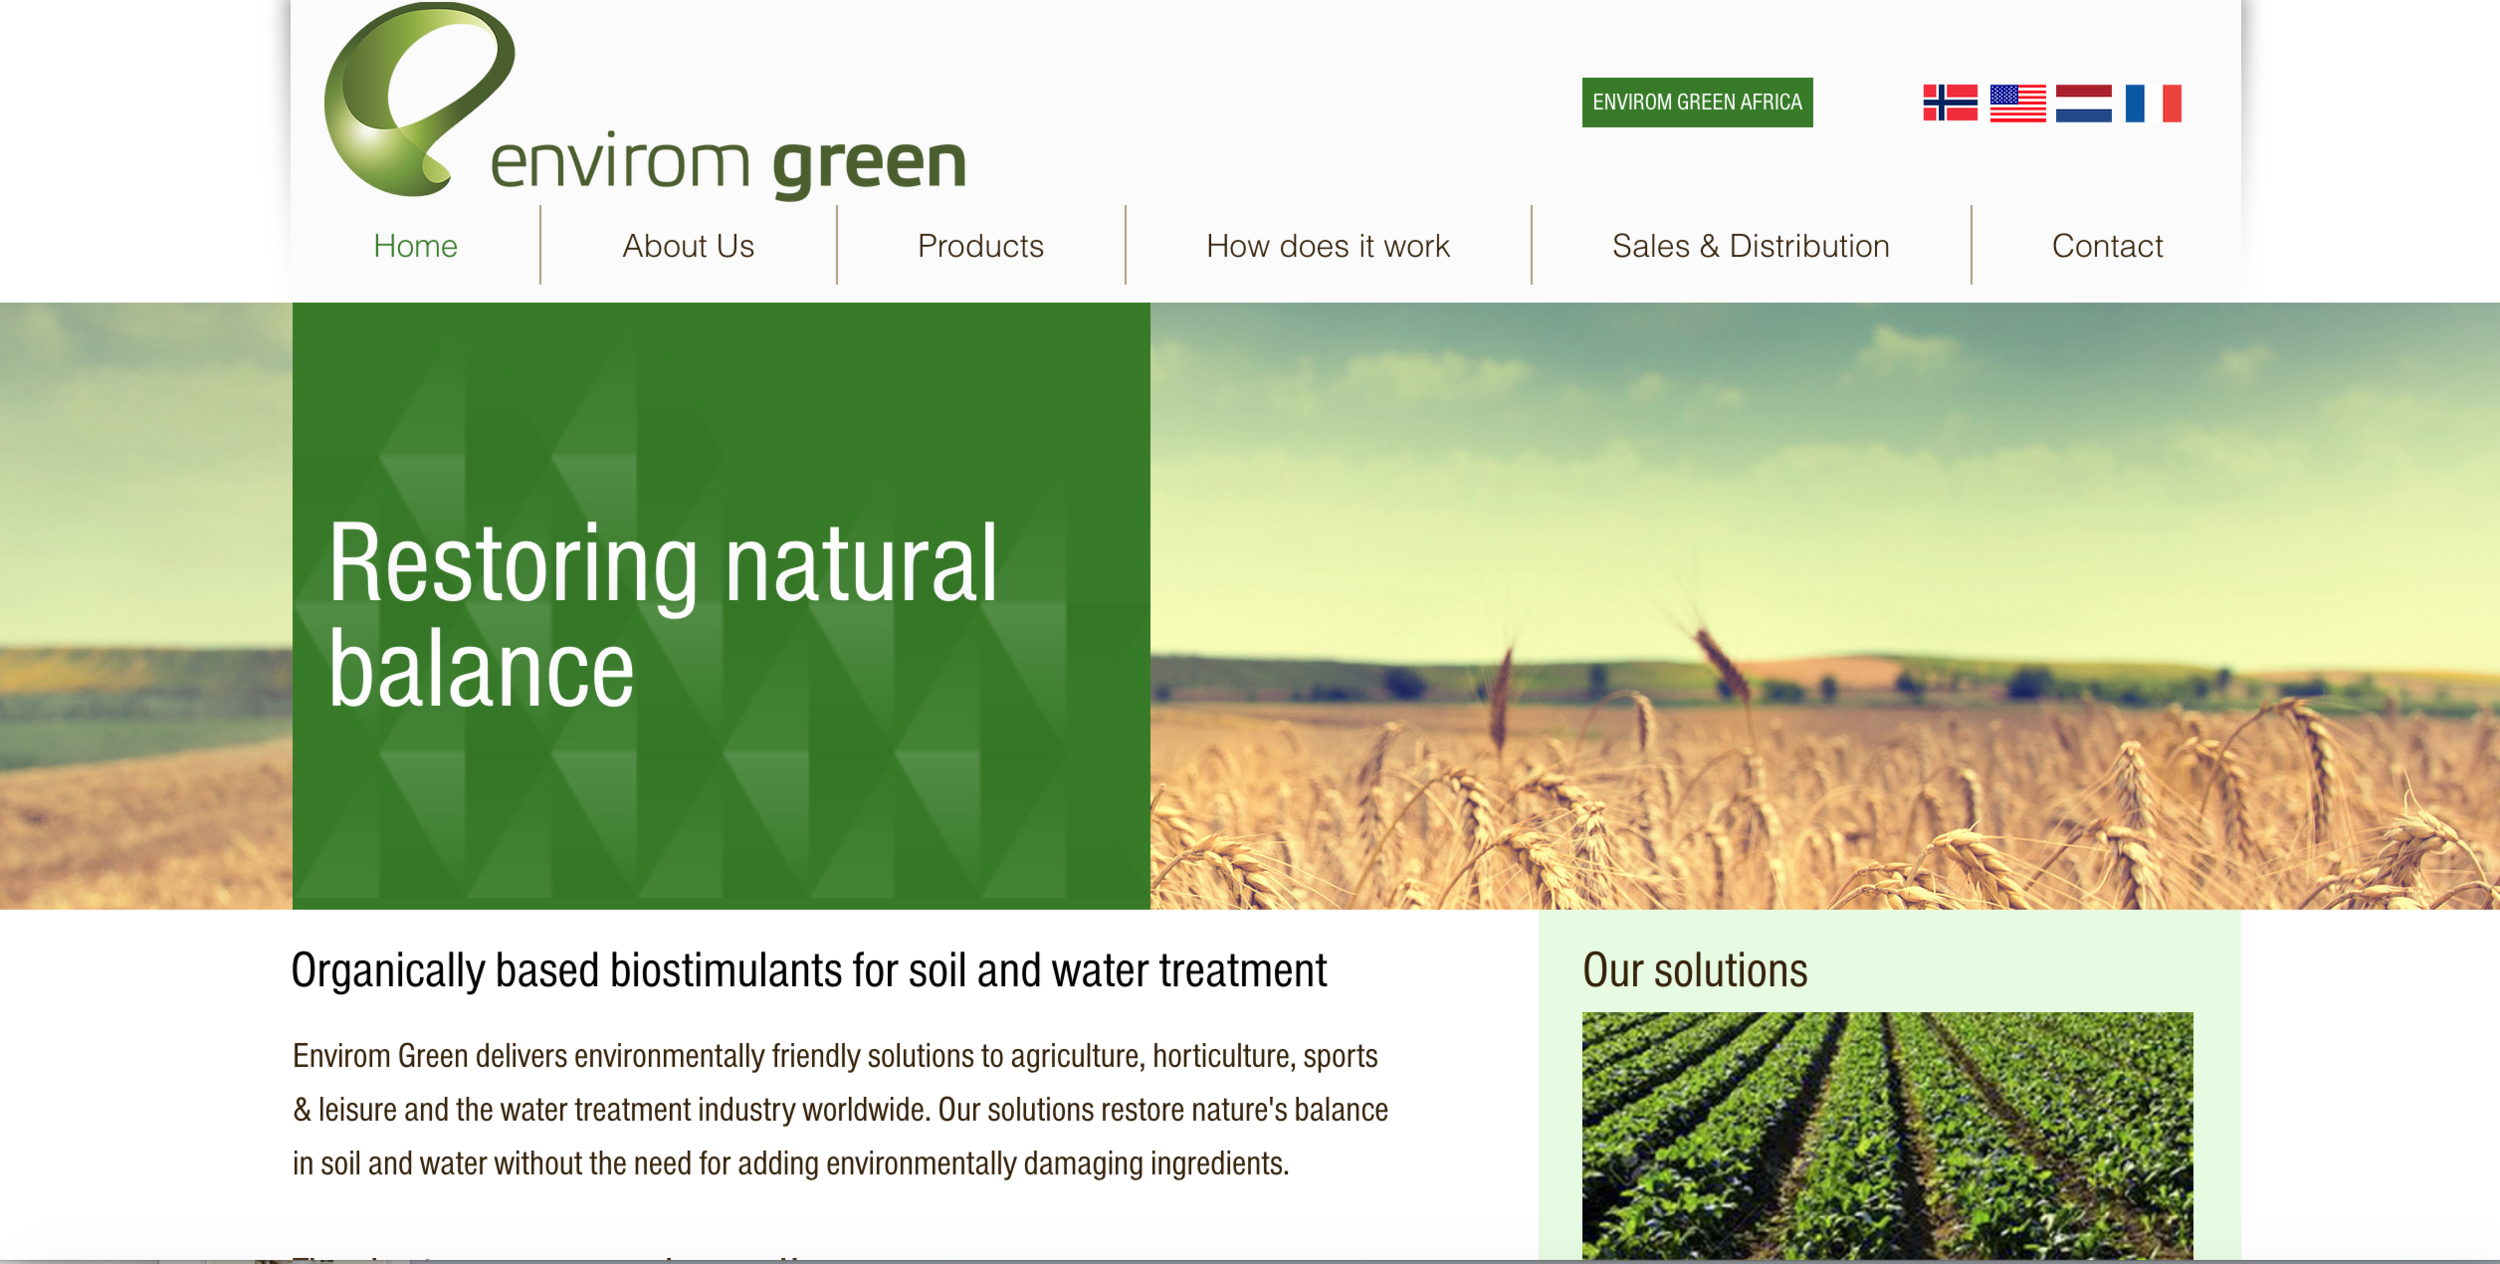 ENVIROM GROUP   Environmentally oriented food and water system focusing on sustainable innovations, making them market viable.  CEO — Einar Kleppe Holthe  bidra.no